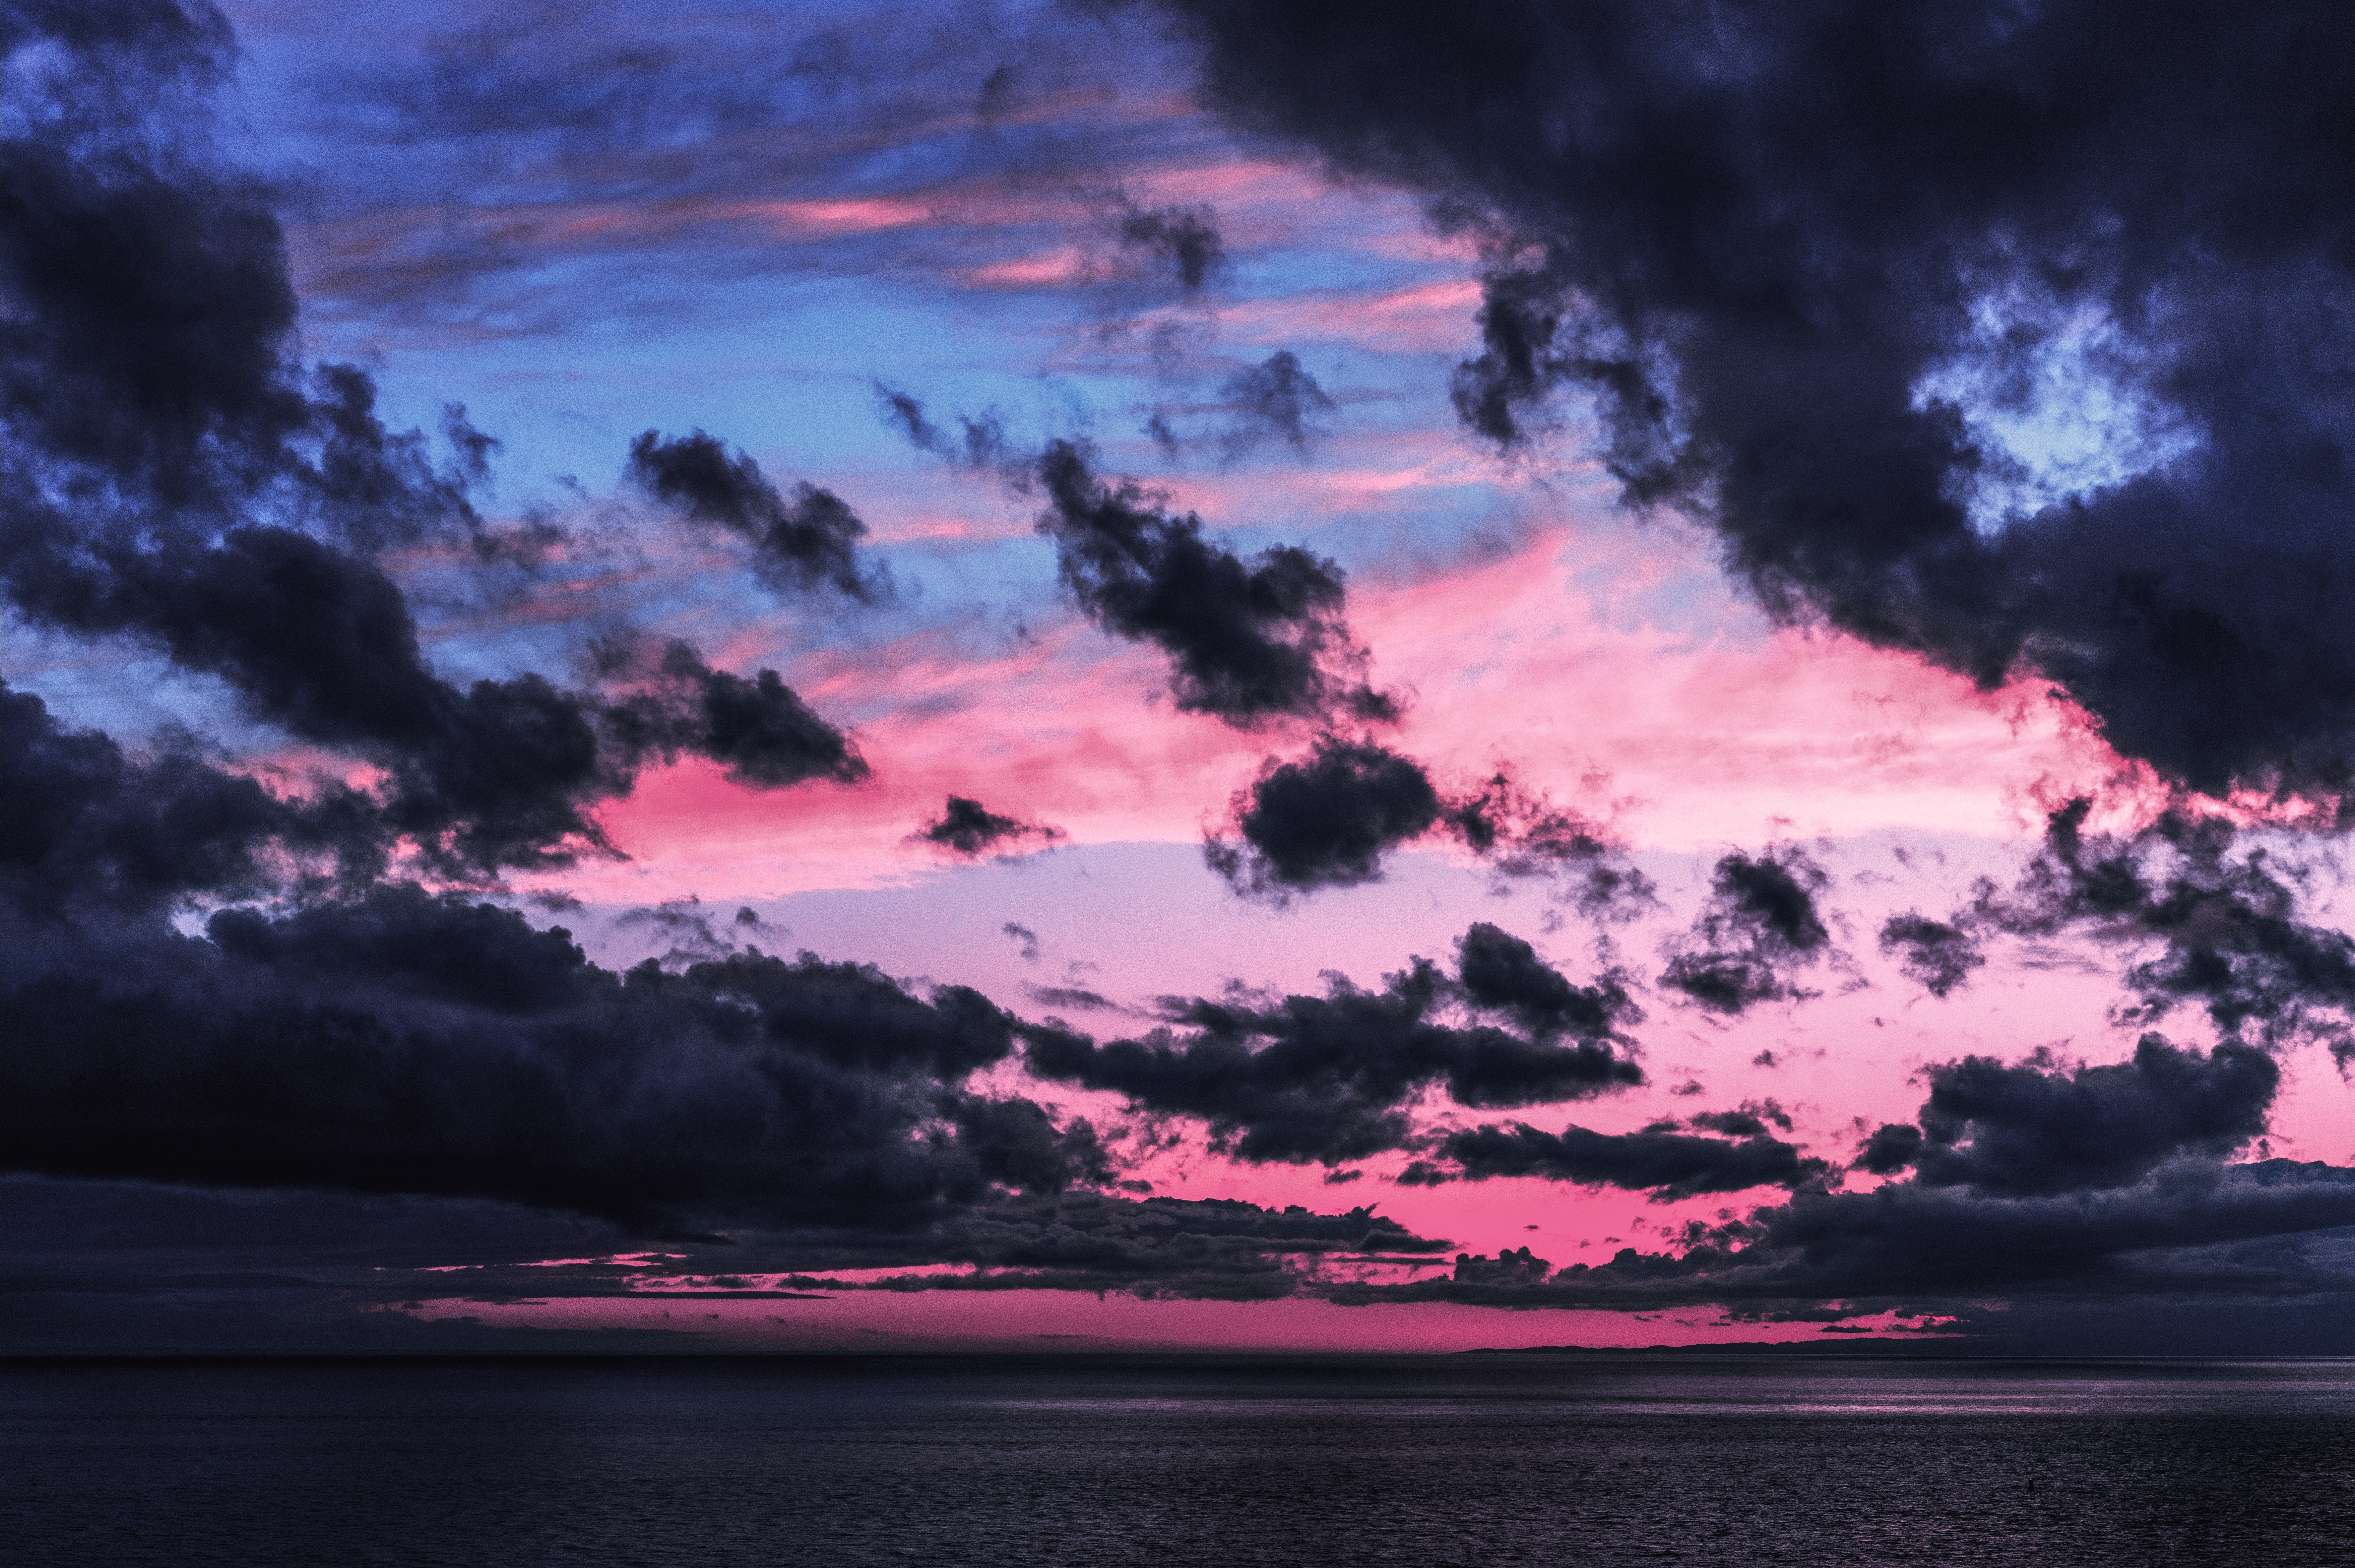 143025 download wallpaper Nature, Sky, Sea, Twilight, Clouds, Horizon, Dark, Dusk screensavers and pictures for free